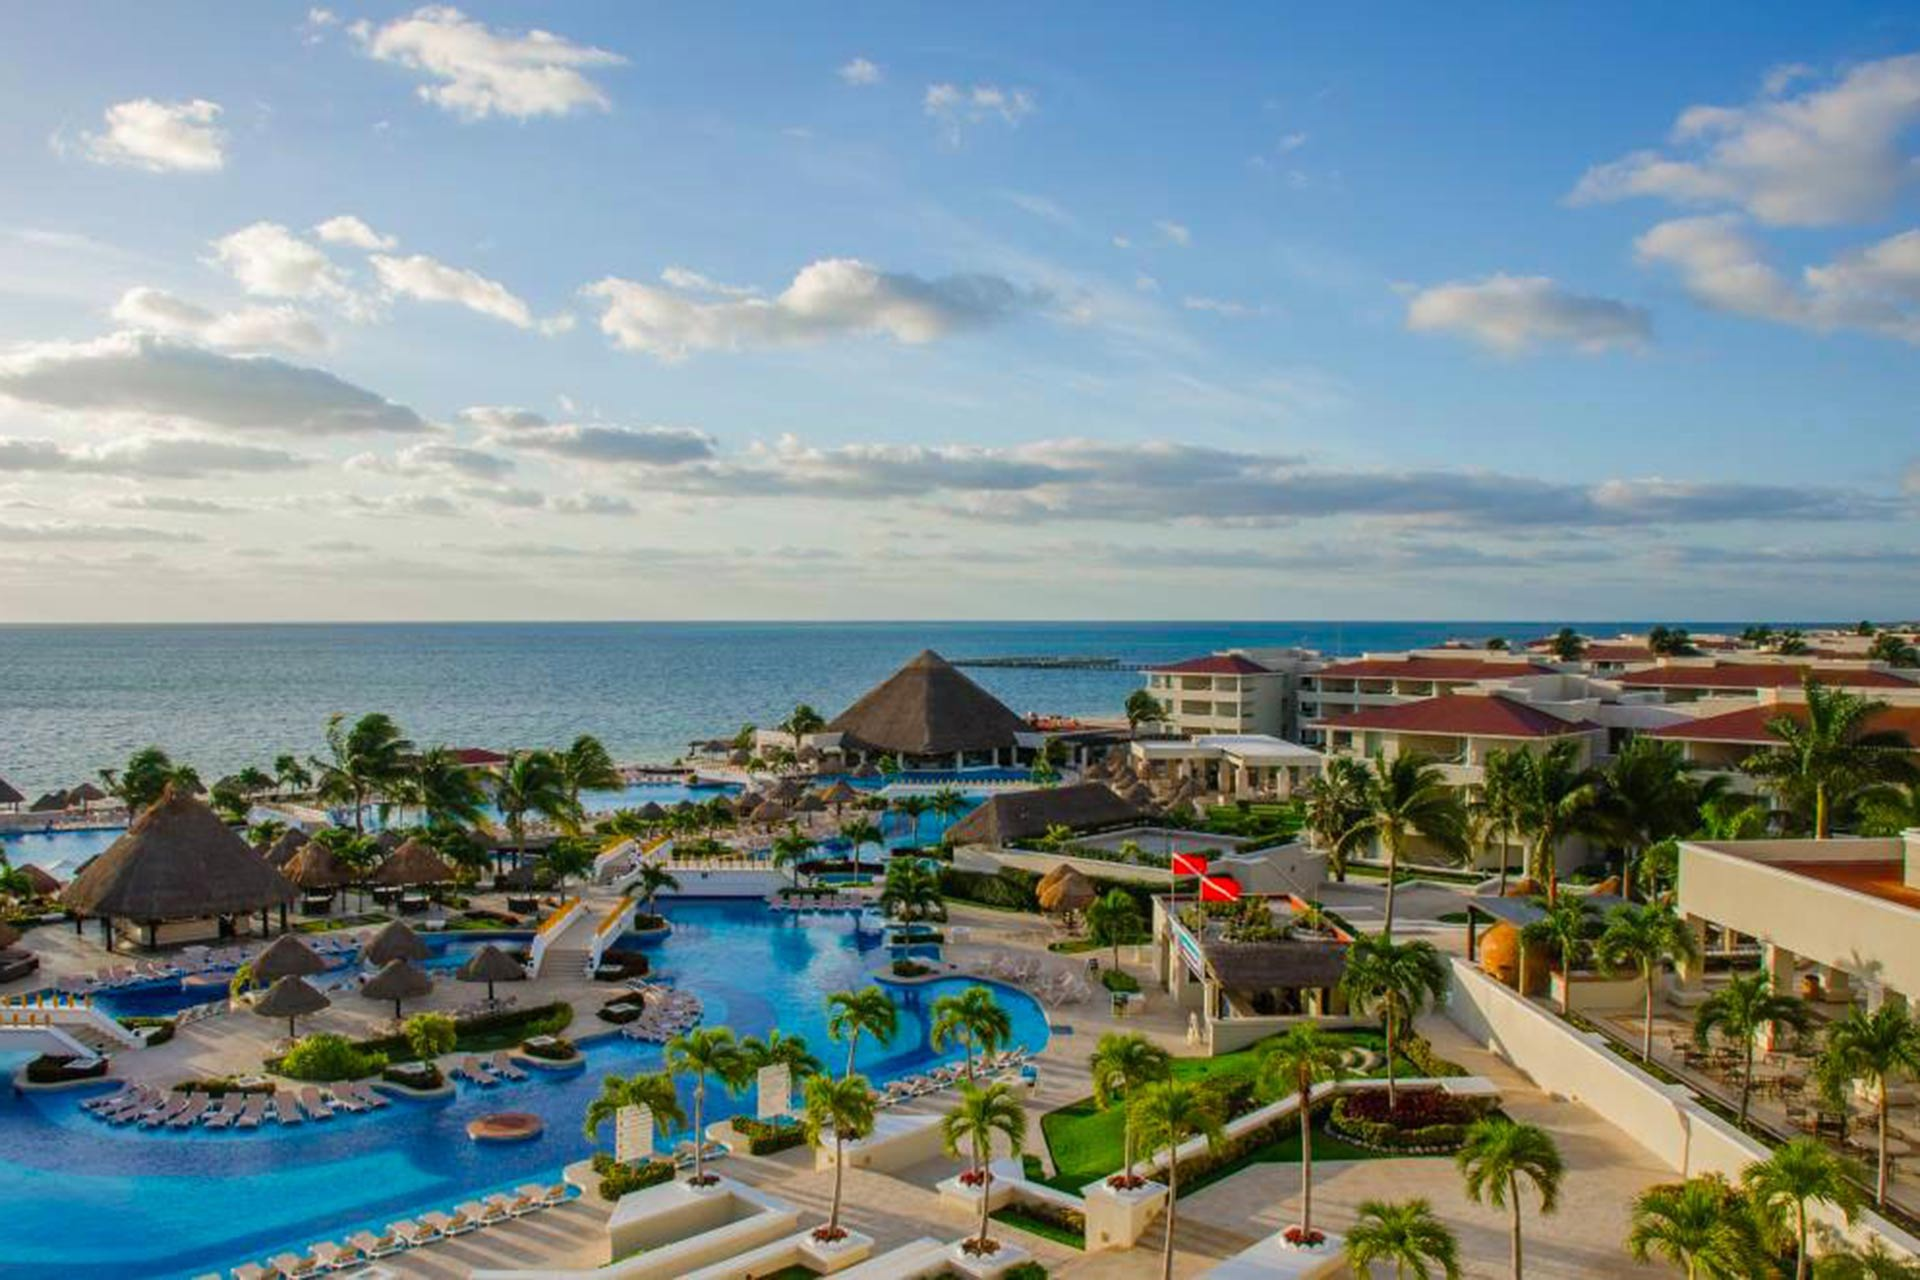 Aerial View of Moon Palace - Cancun, MX - All Inclusive Resort